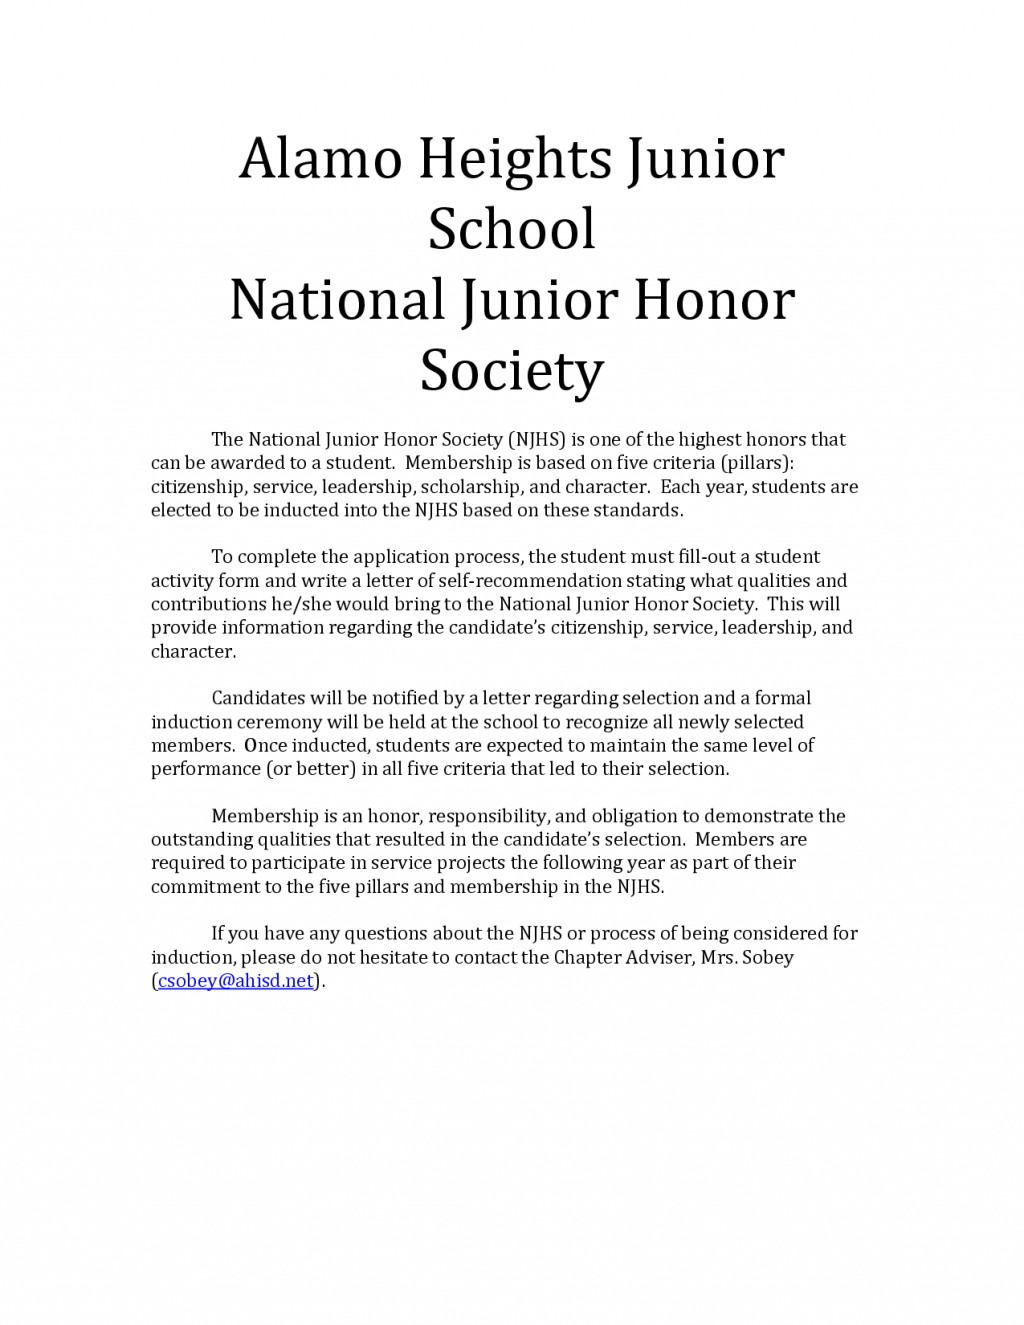 006 Essay Example National Junior Honor Society Unusual Samples Large